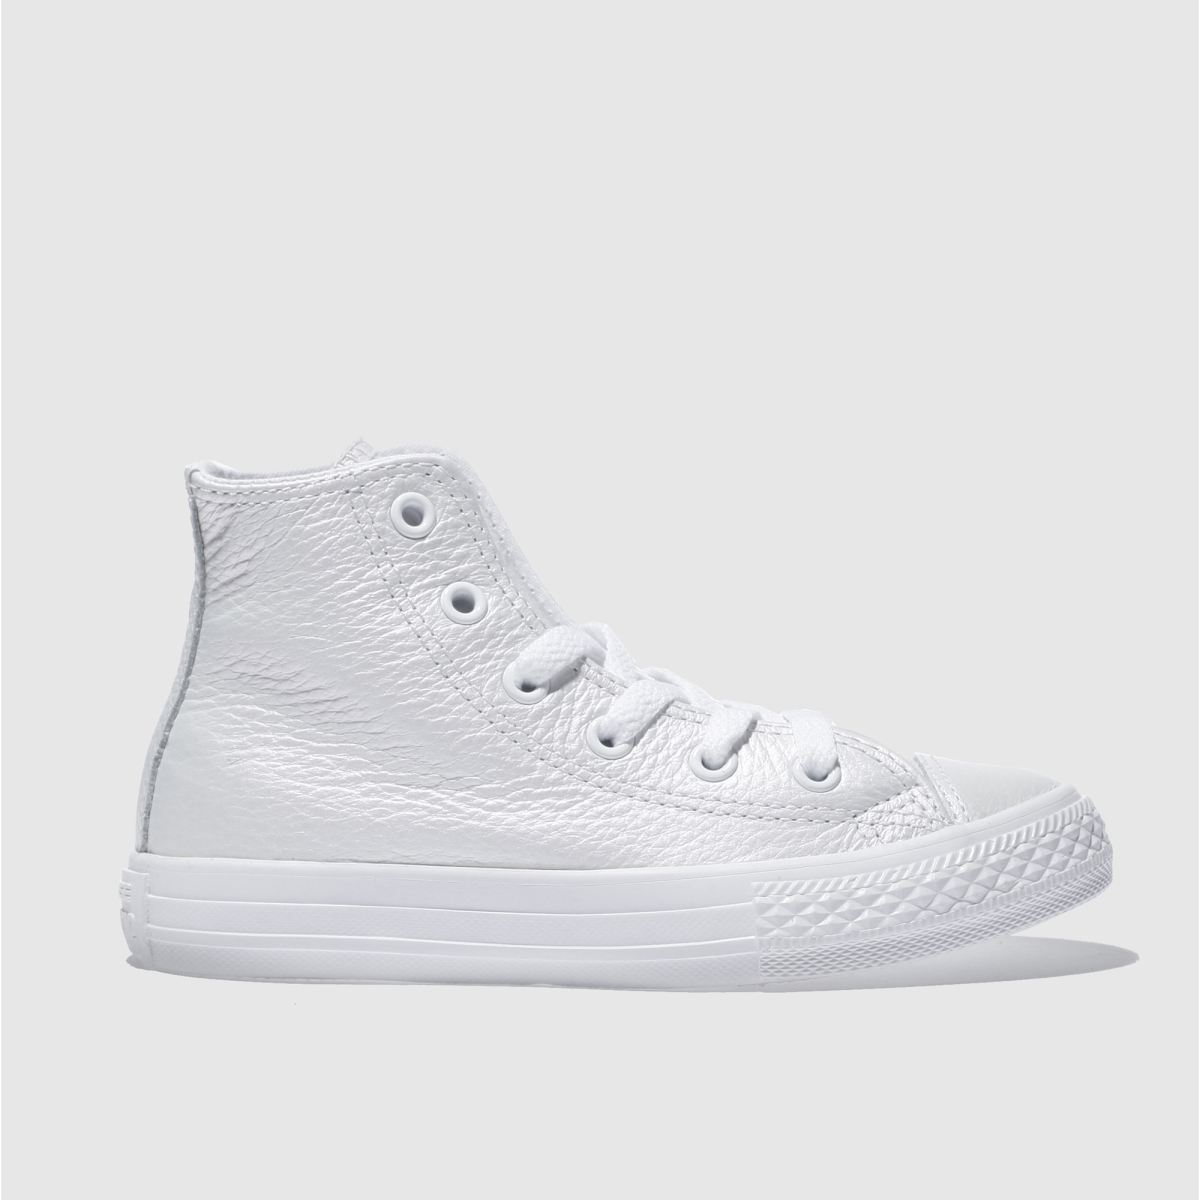 converse white all star hi Girls Junior Trainers